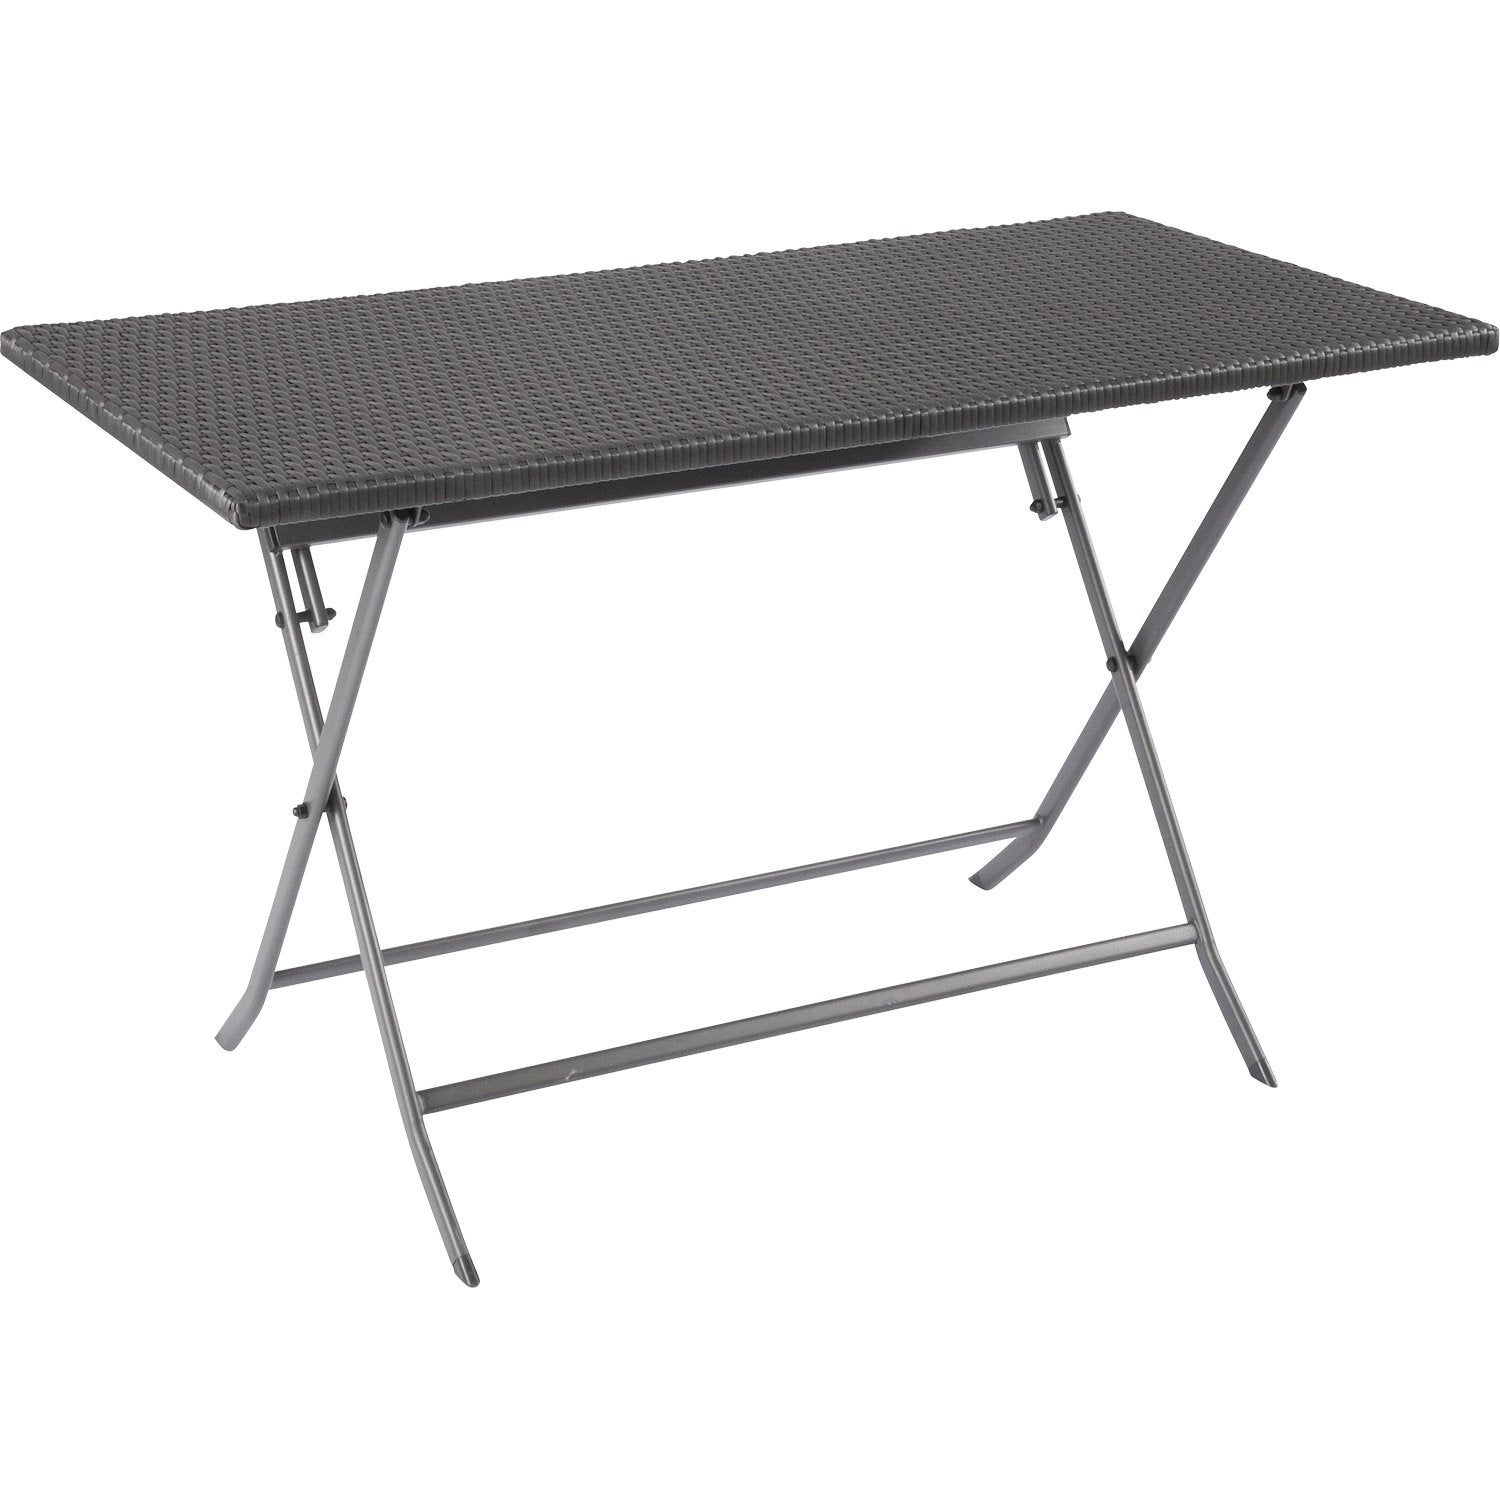 Table de jardin ratan rectangulaire noir 4 personnes for Table de cuisine pliante leroy merlin